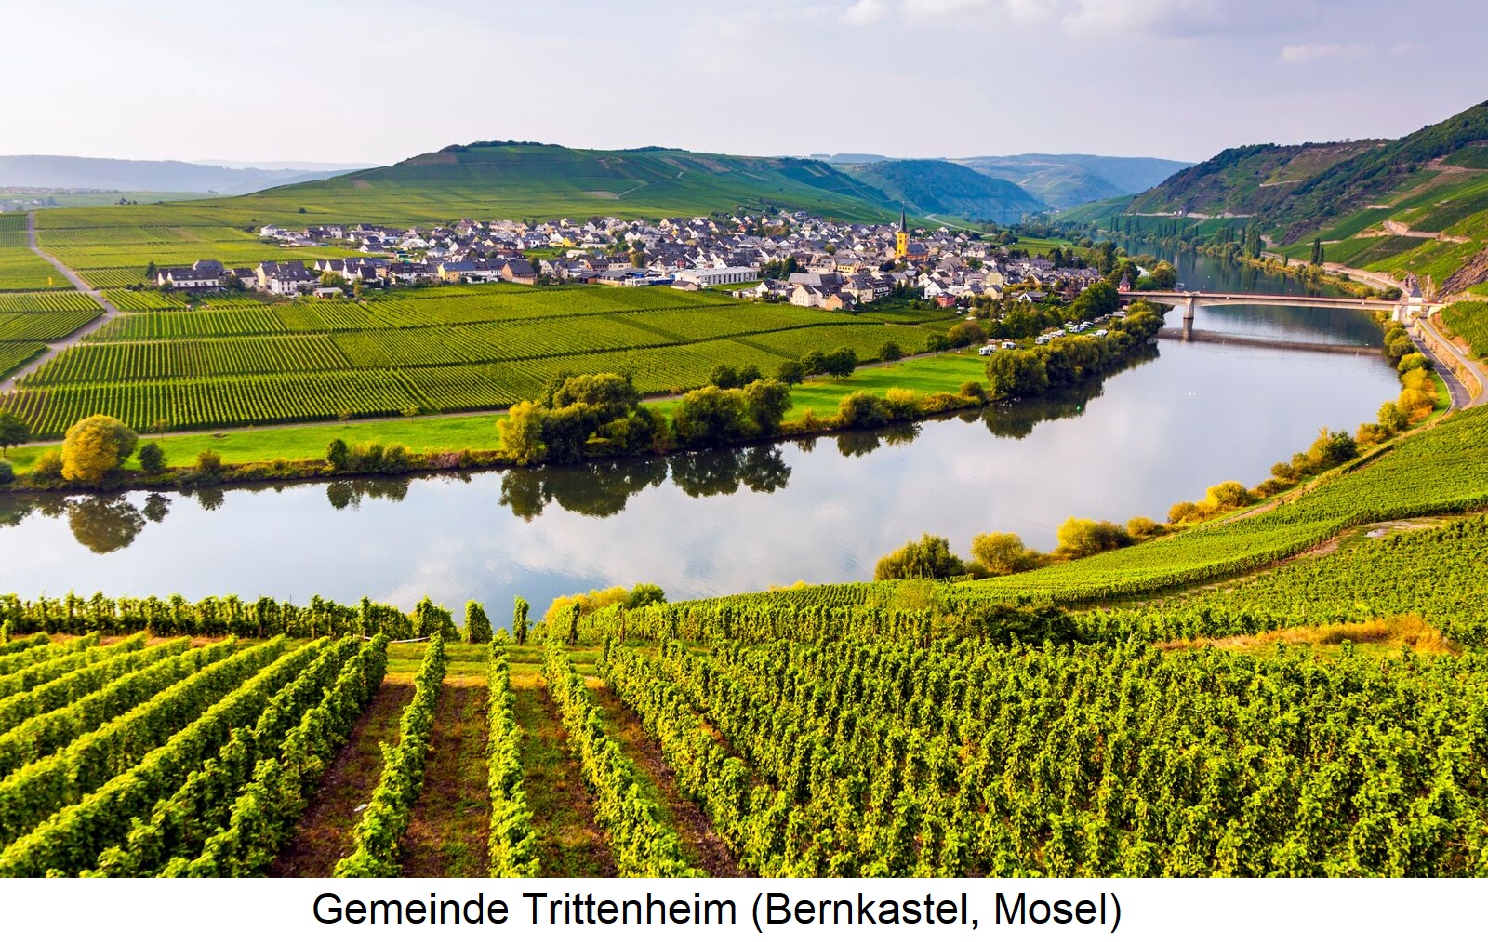 Vineyard maintenance - Vineyards in the municipality of Trittenheim (Bernkastel, Mosel)